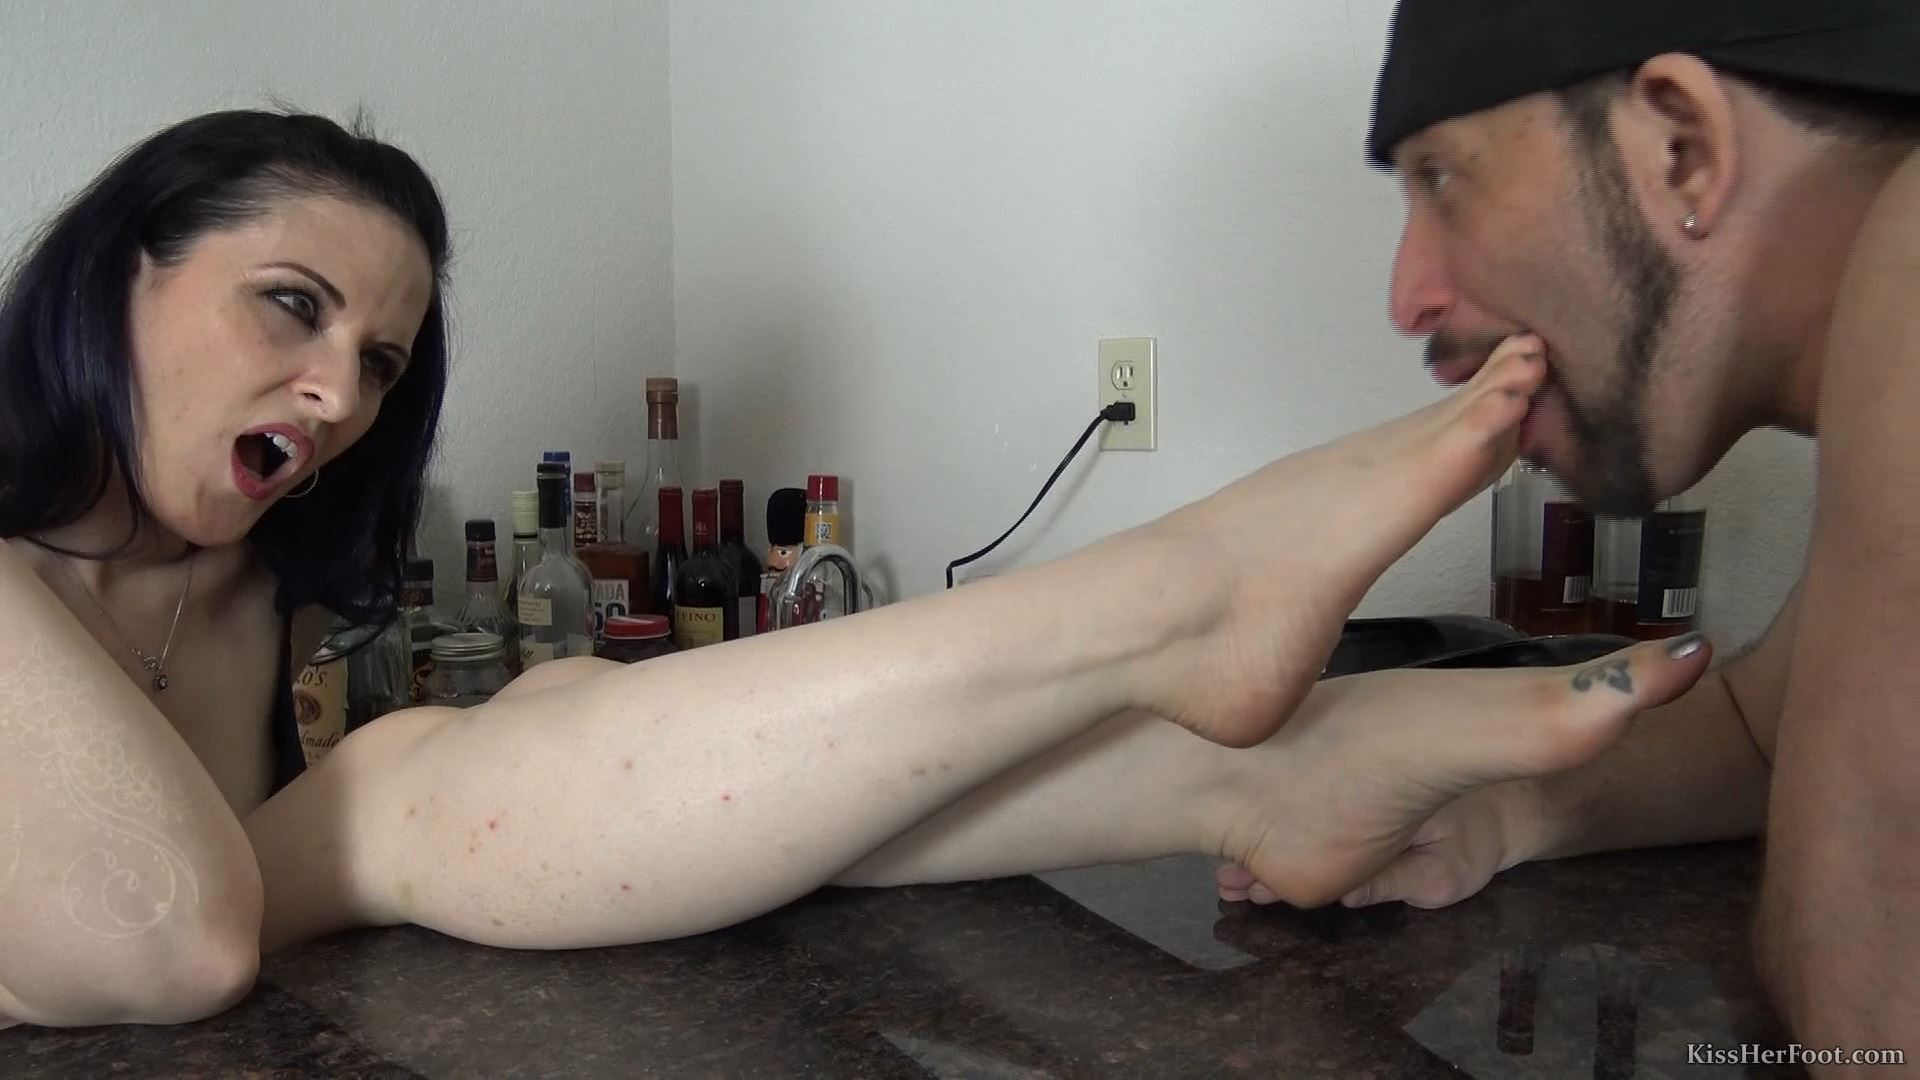 Caroline is being very dominant - KISSHERFOOT - FULL HD/1080p/MP4